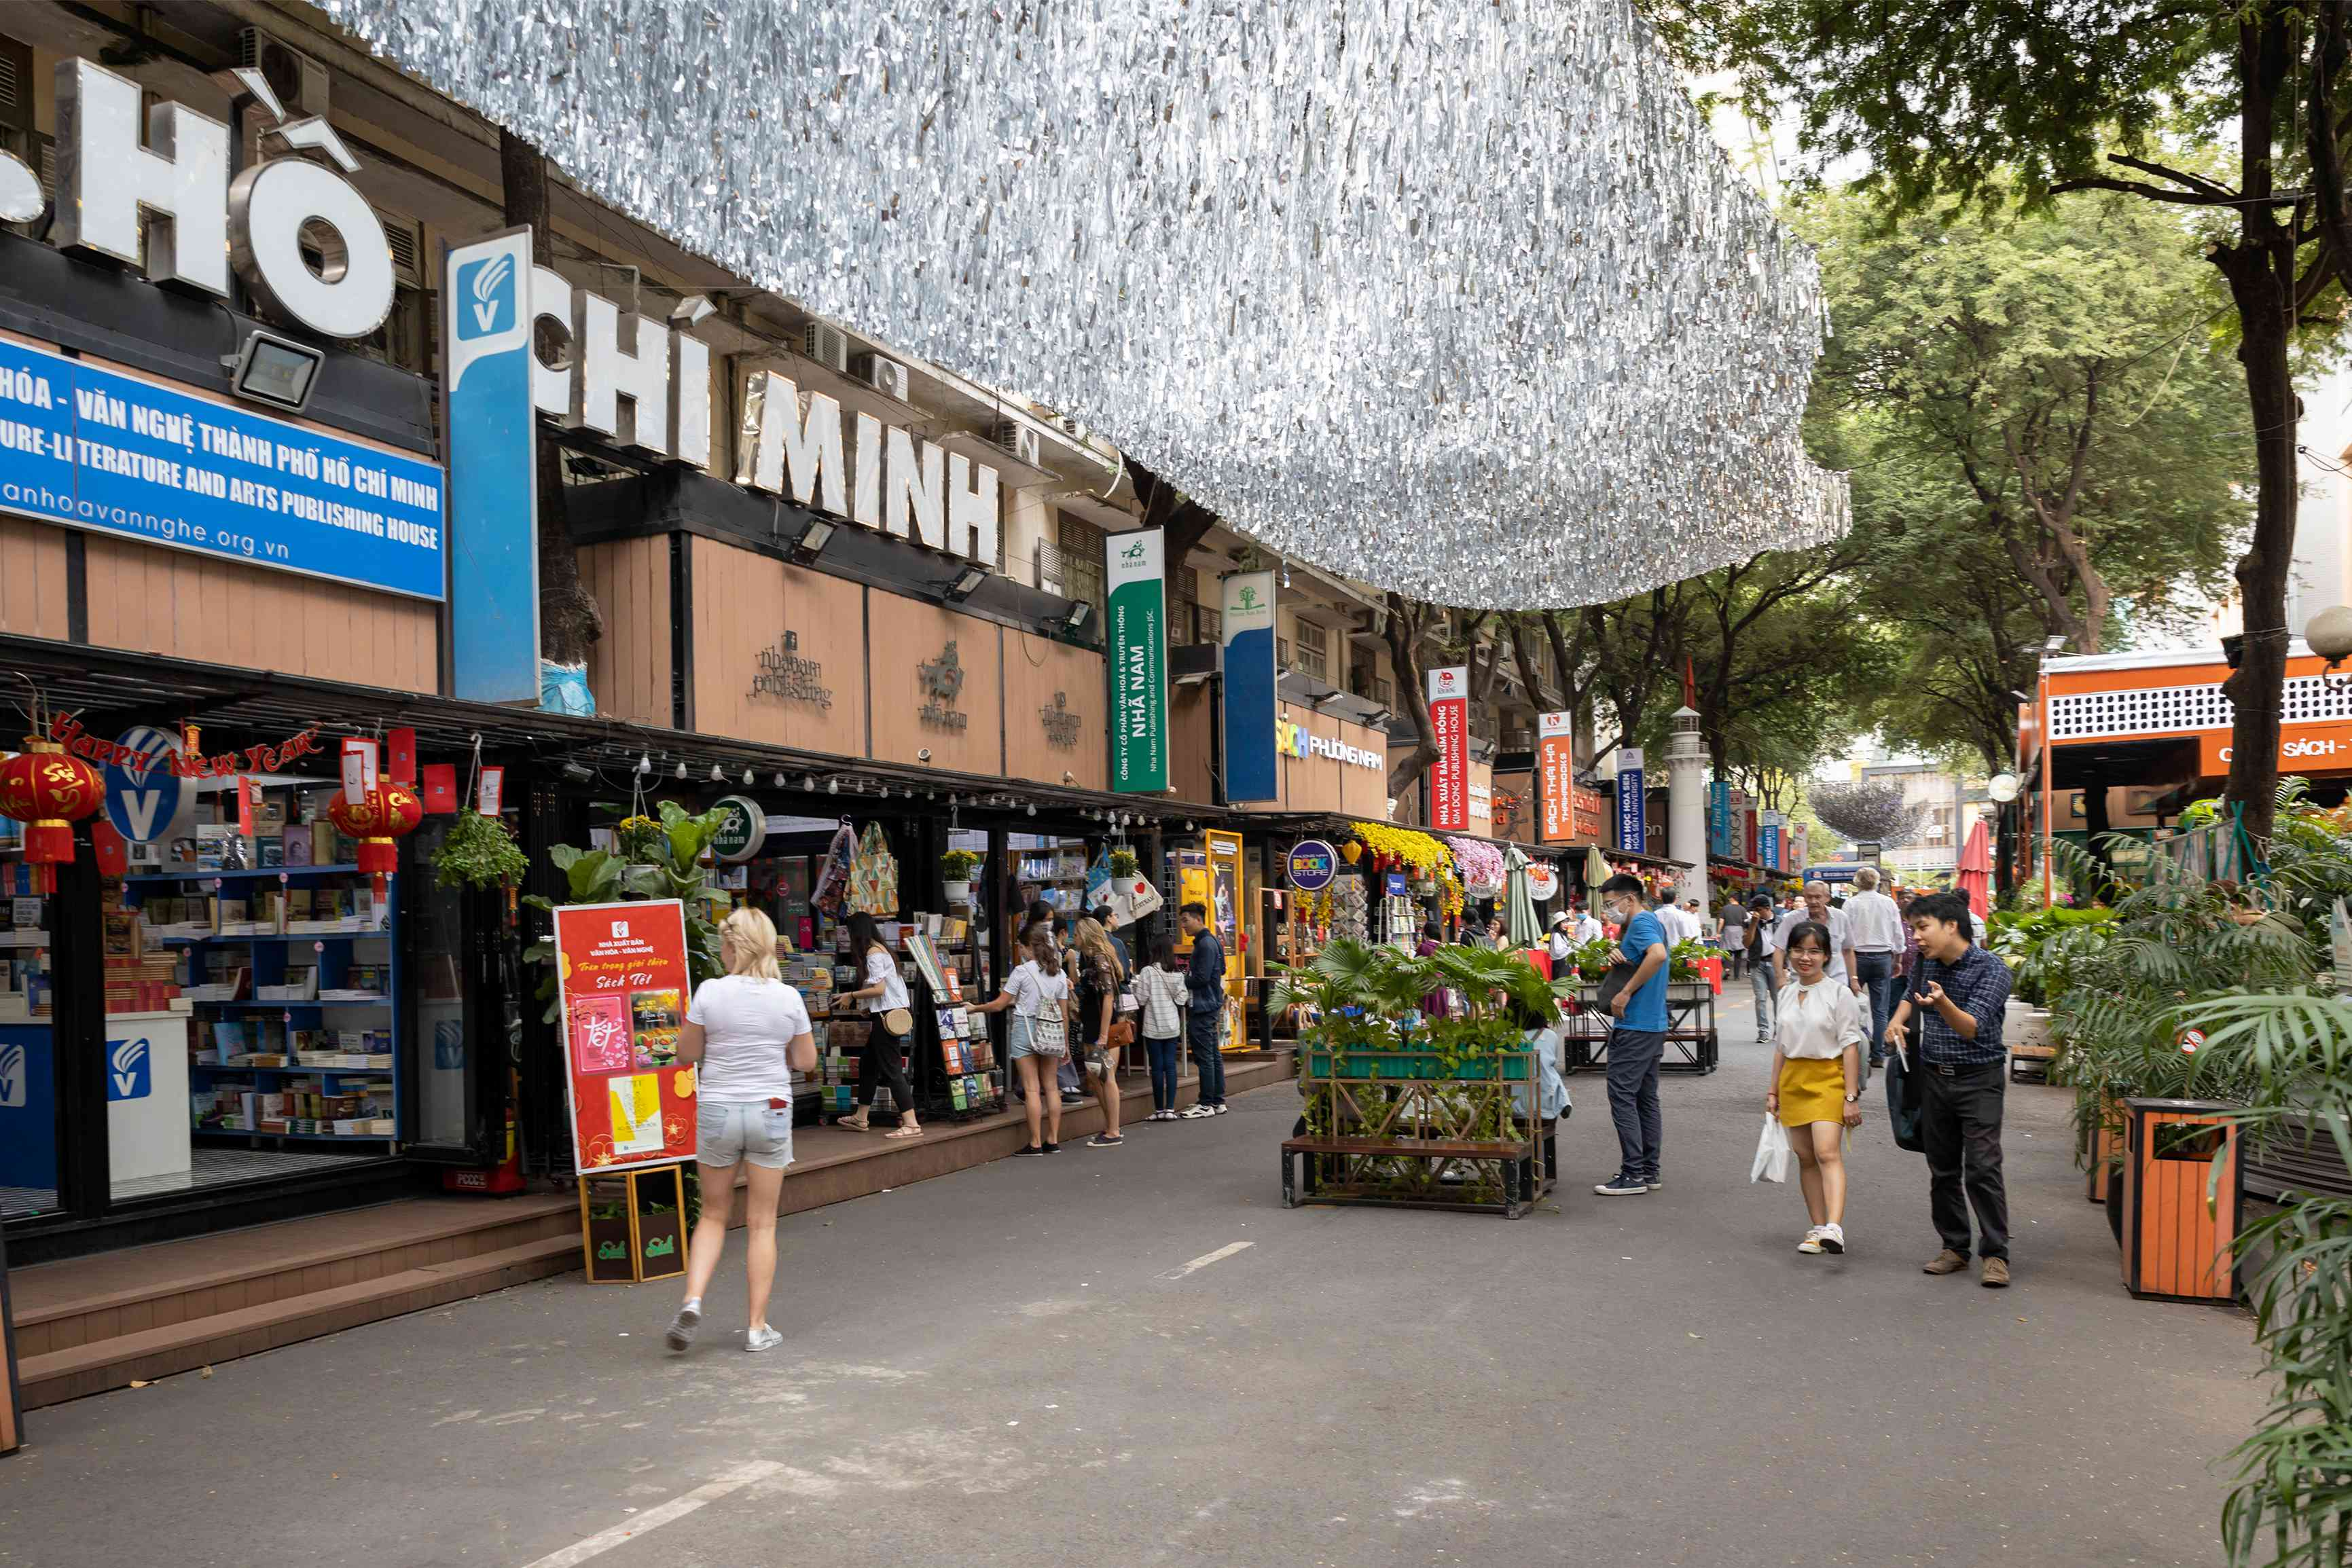 Book Street pedestrianized area in Ho Chi Minh City